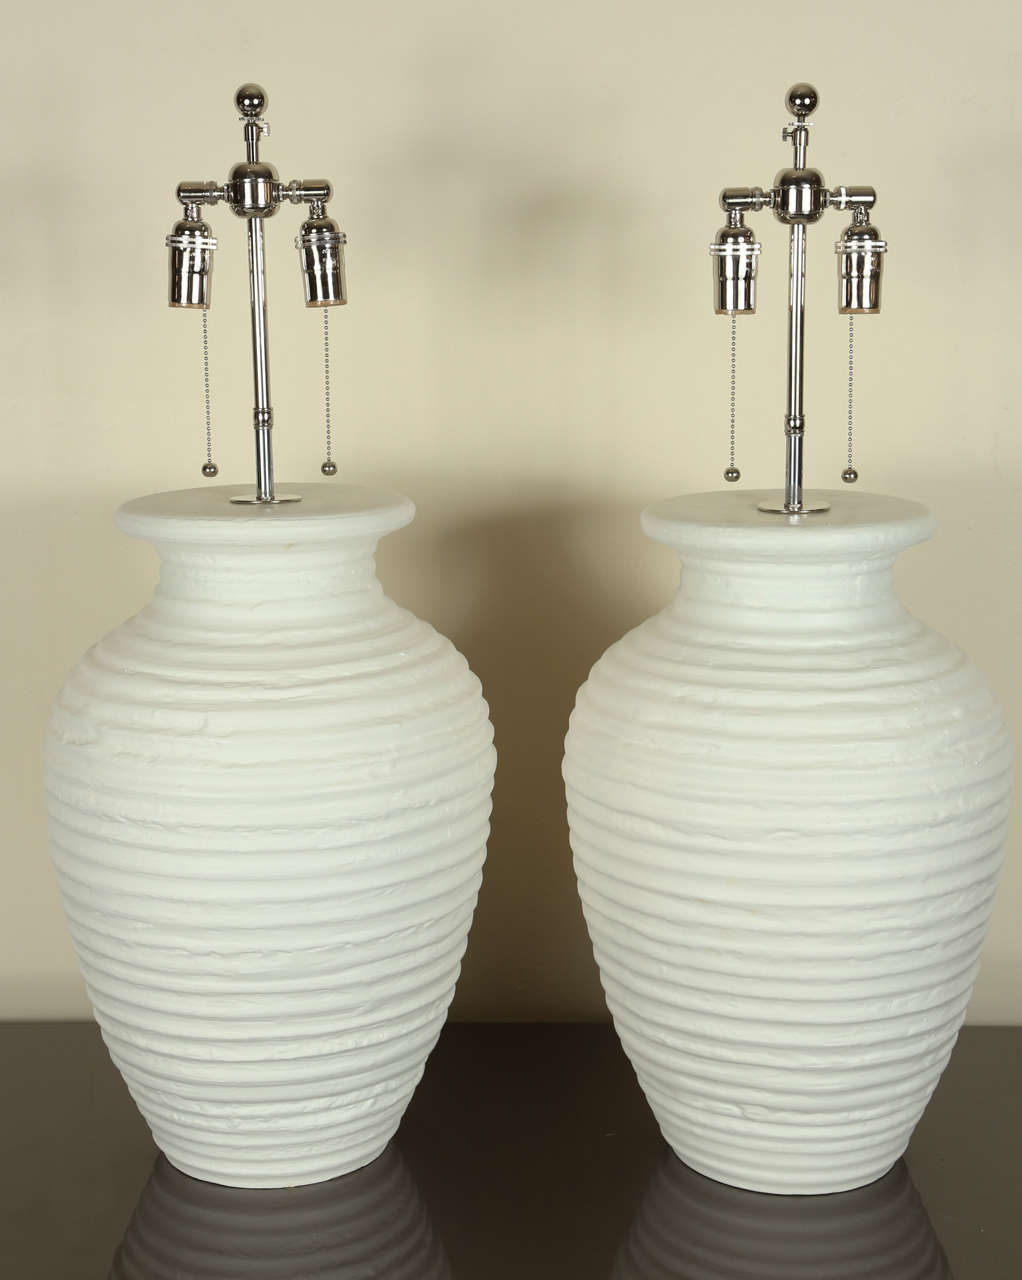 Large Pair of Urn Shaped Ceramic Table Lamps with a Matte White Finish 2